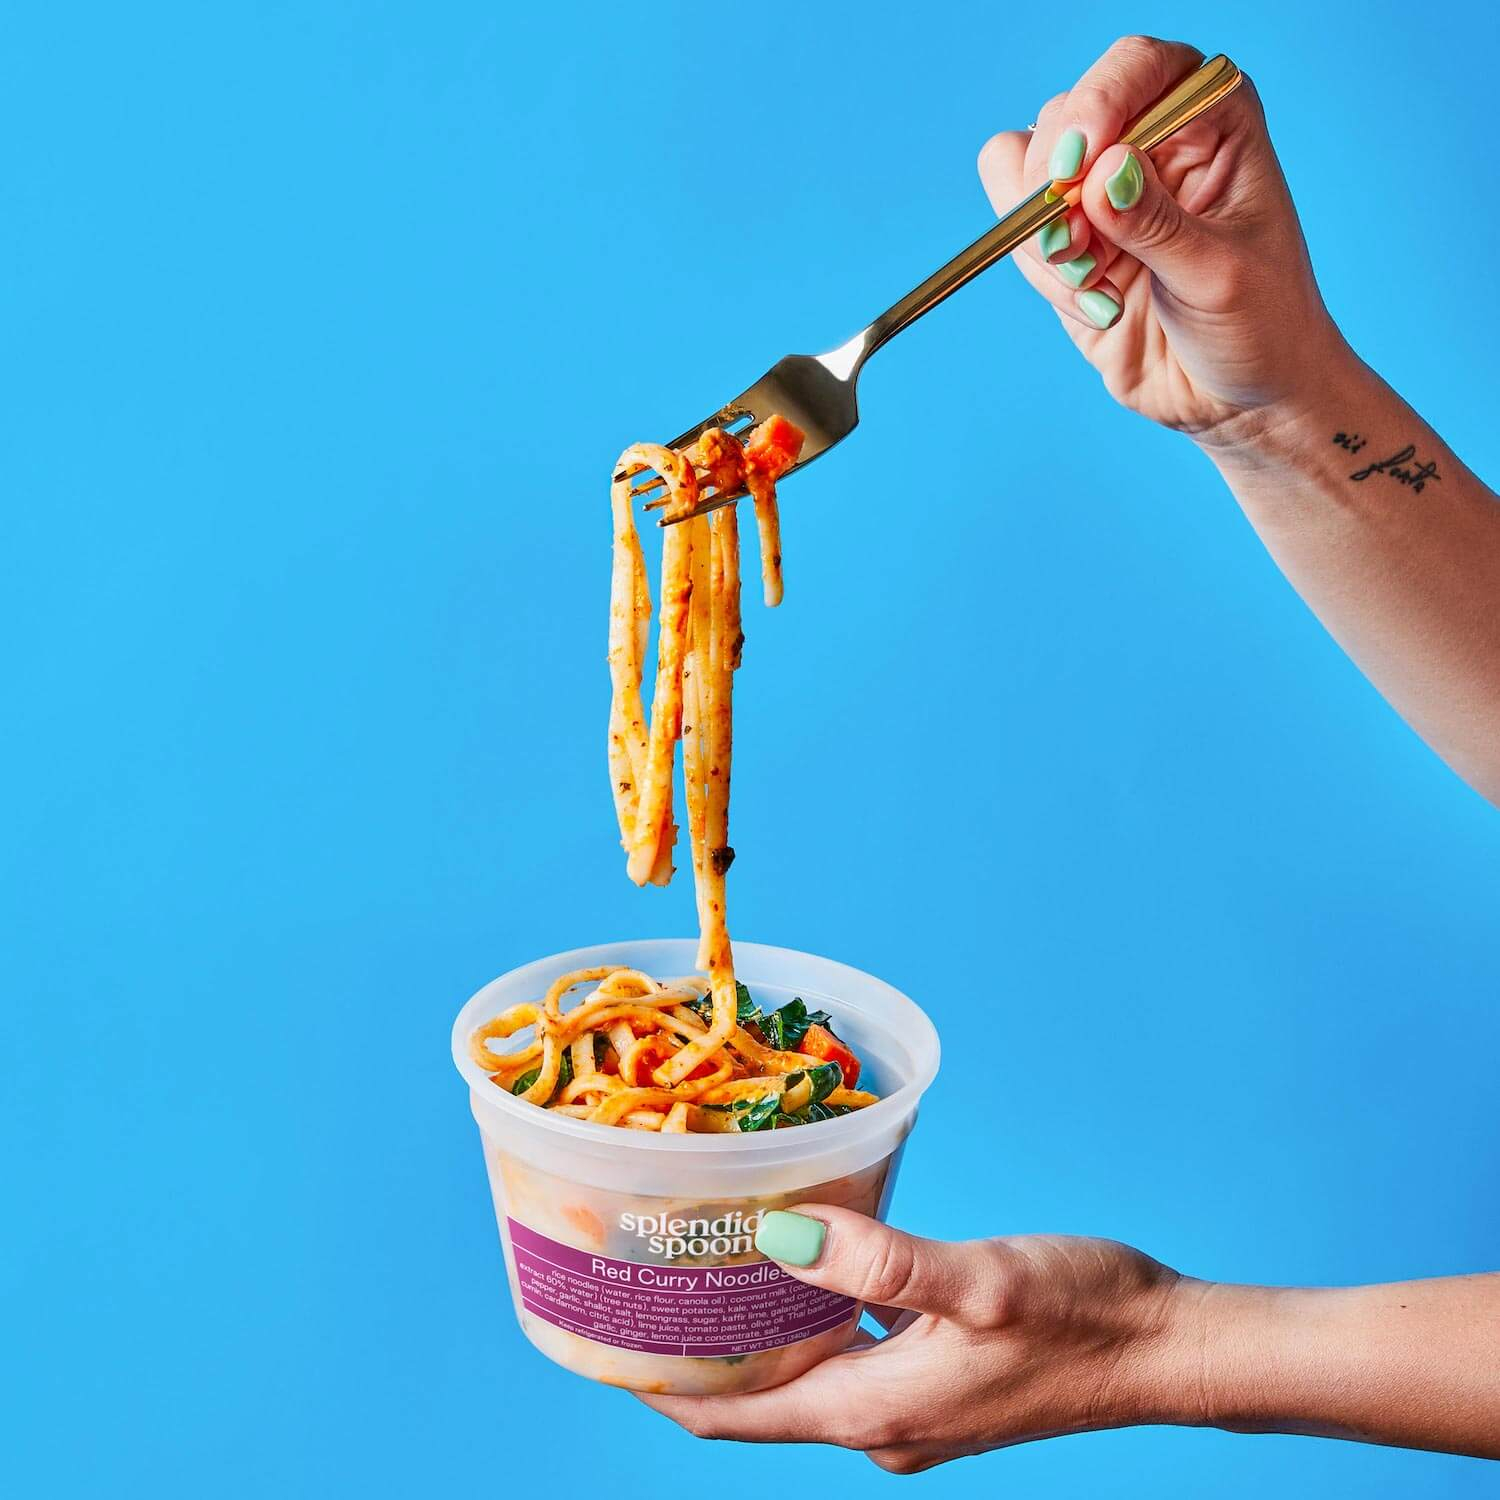 Red Curry Noodles in a Splendid Spoon container, being held by a woman in front of a blue background.